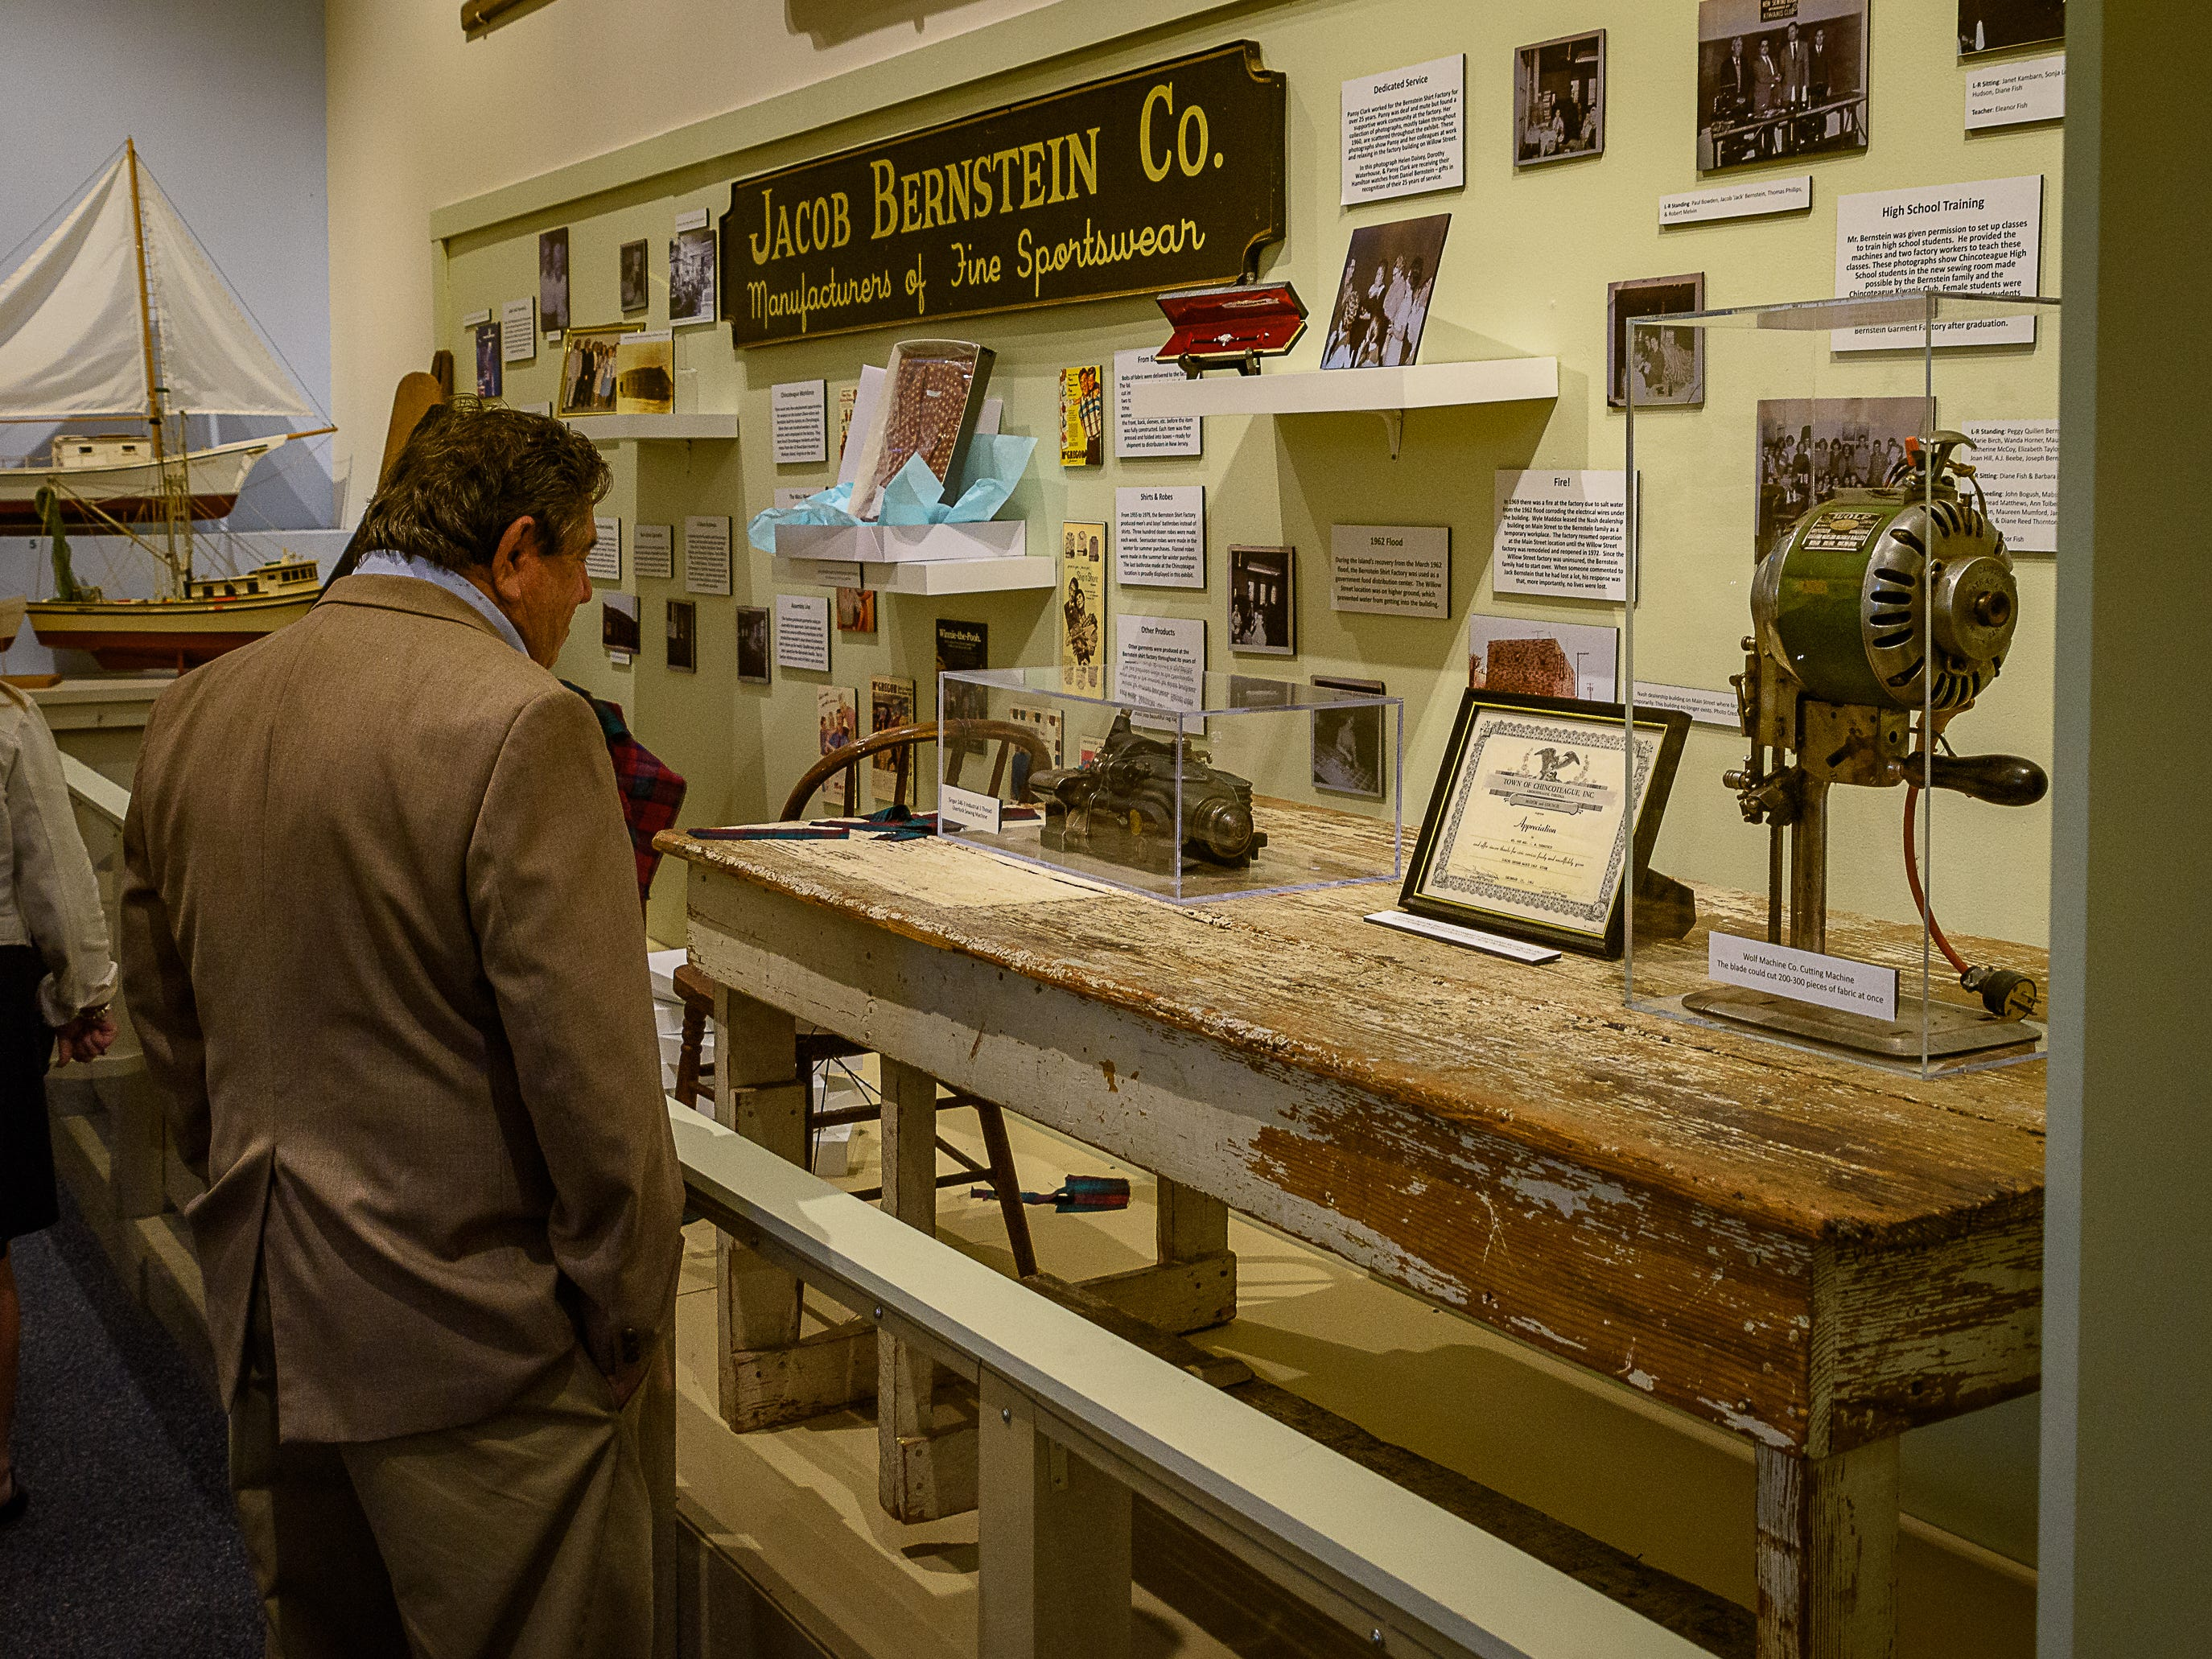 Nick Bernstein looks over the exhibit covering the factory that his family owned on Delmarva.